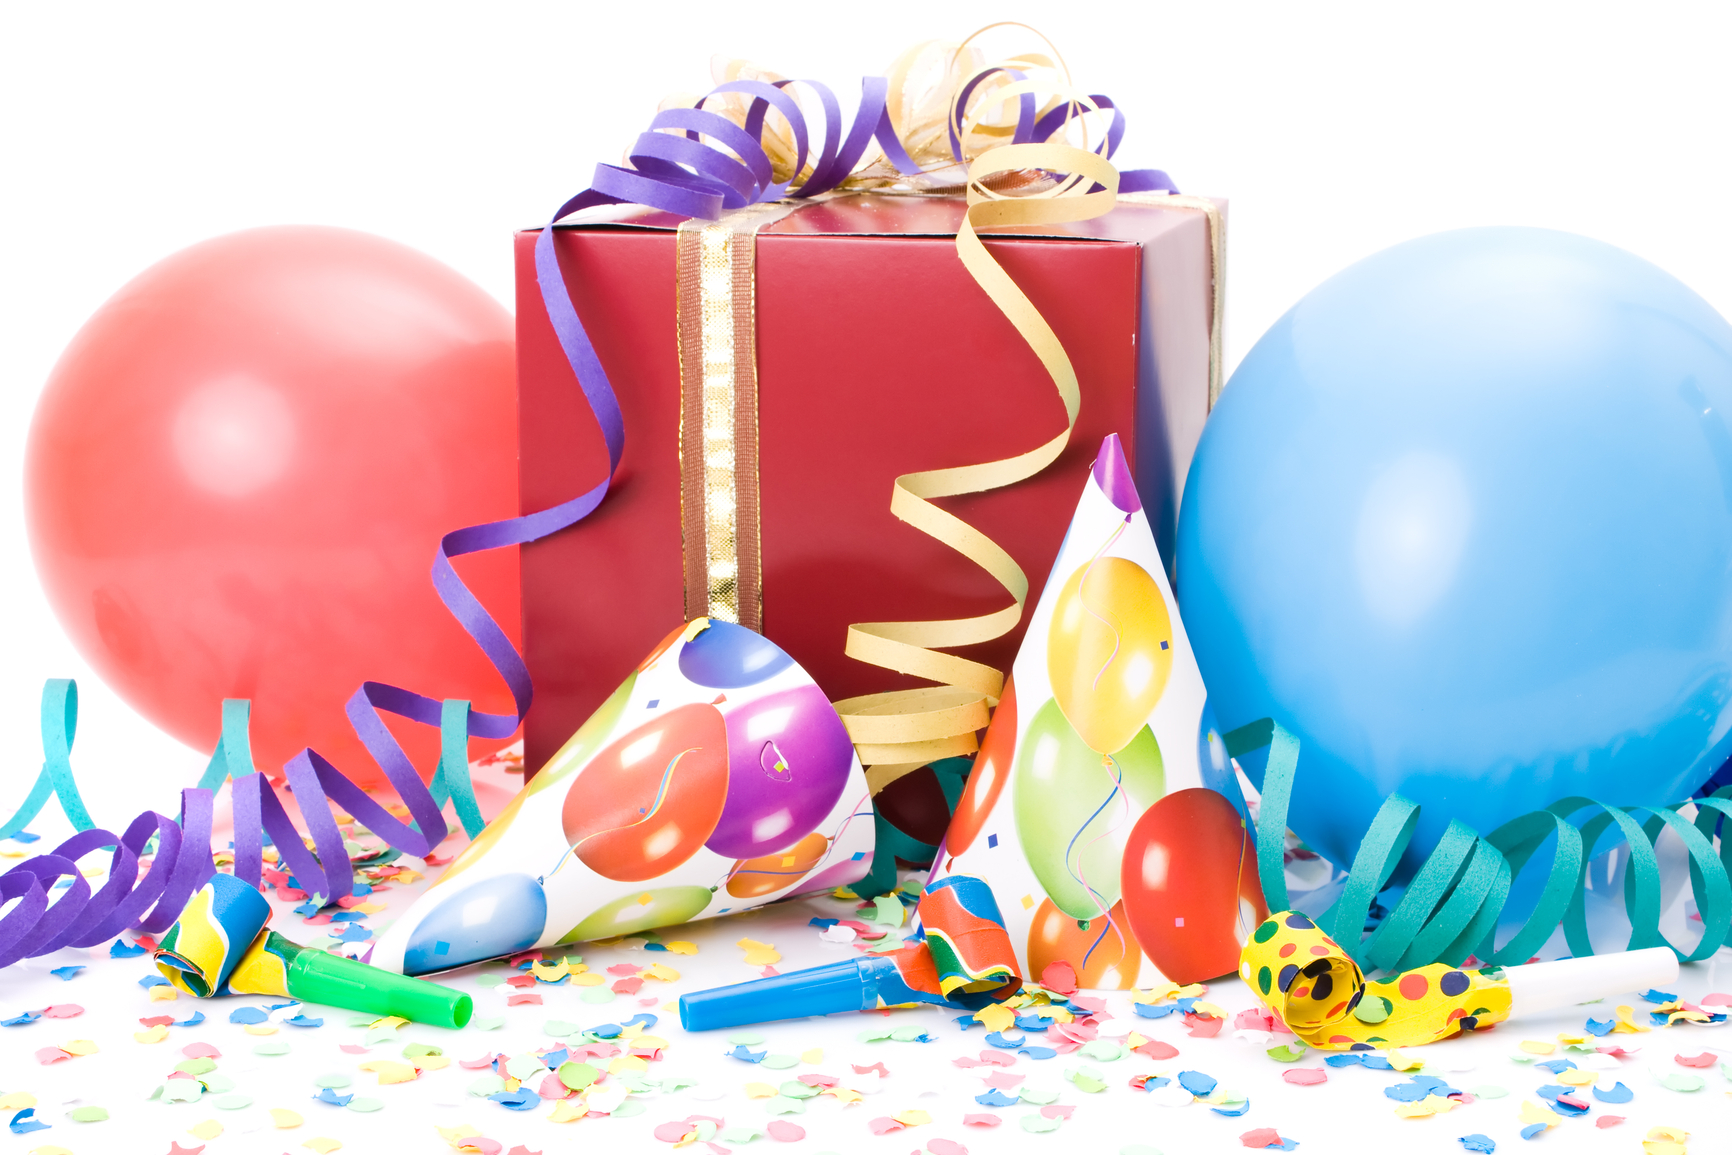 stockfresh_402672_gift-party-hats-horns-or-whistles-confettis-and-balloons-on-white-background_sizeM